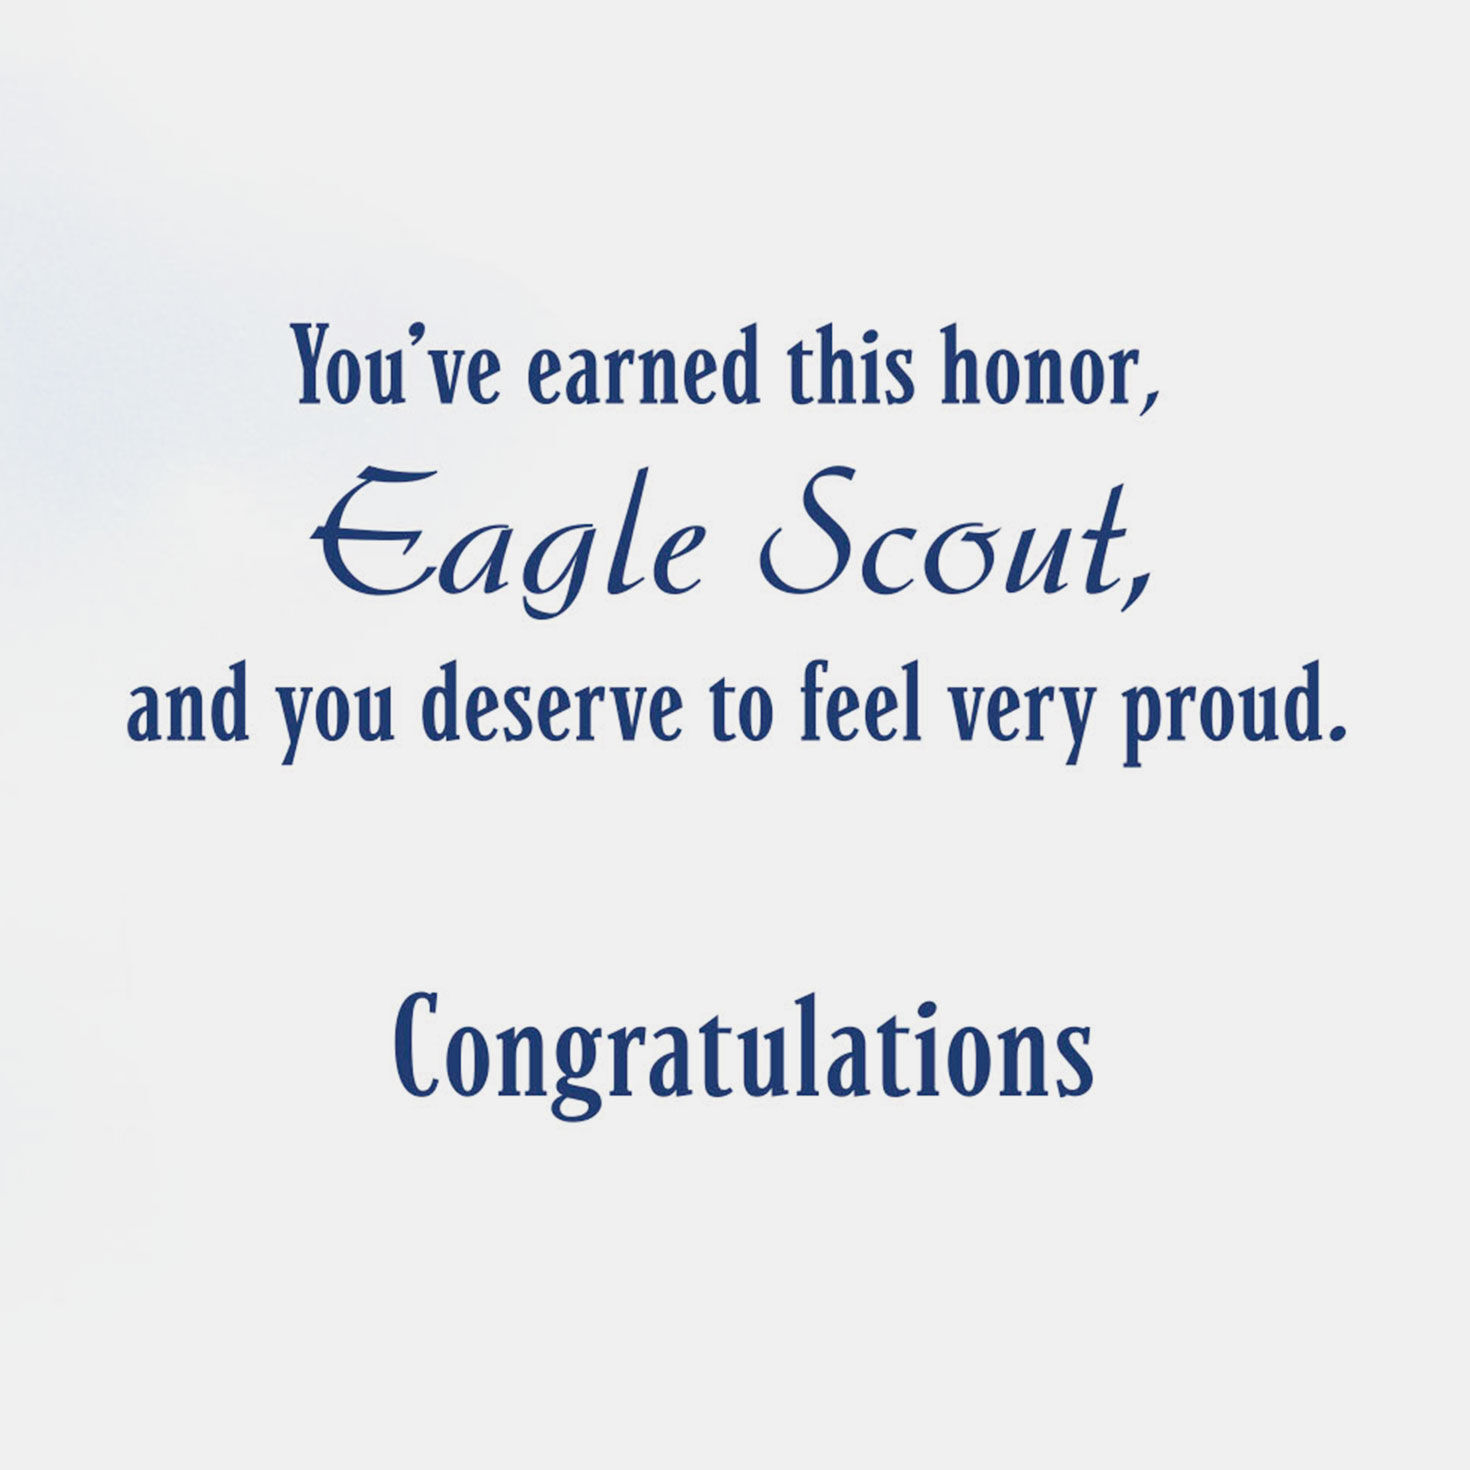 picture regarding Eagle Scout Congratulations Card Printable called A Design of Identity Eagle Scout Congratulations Card